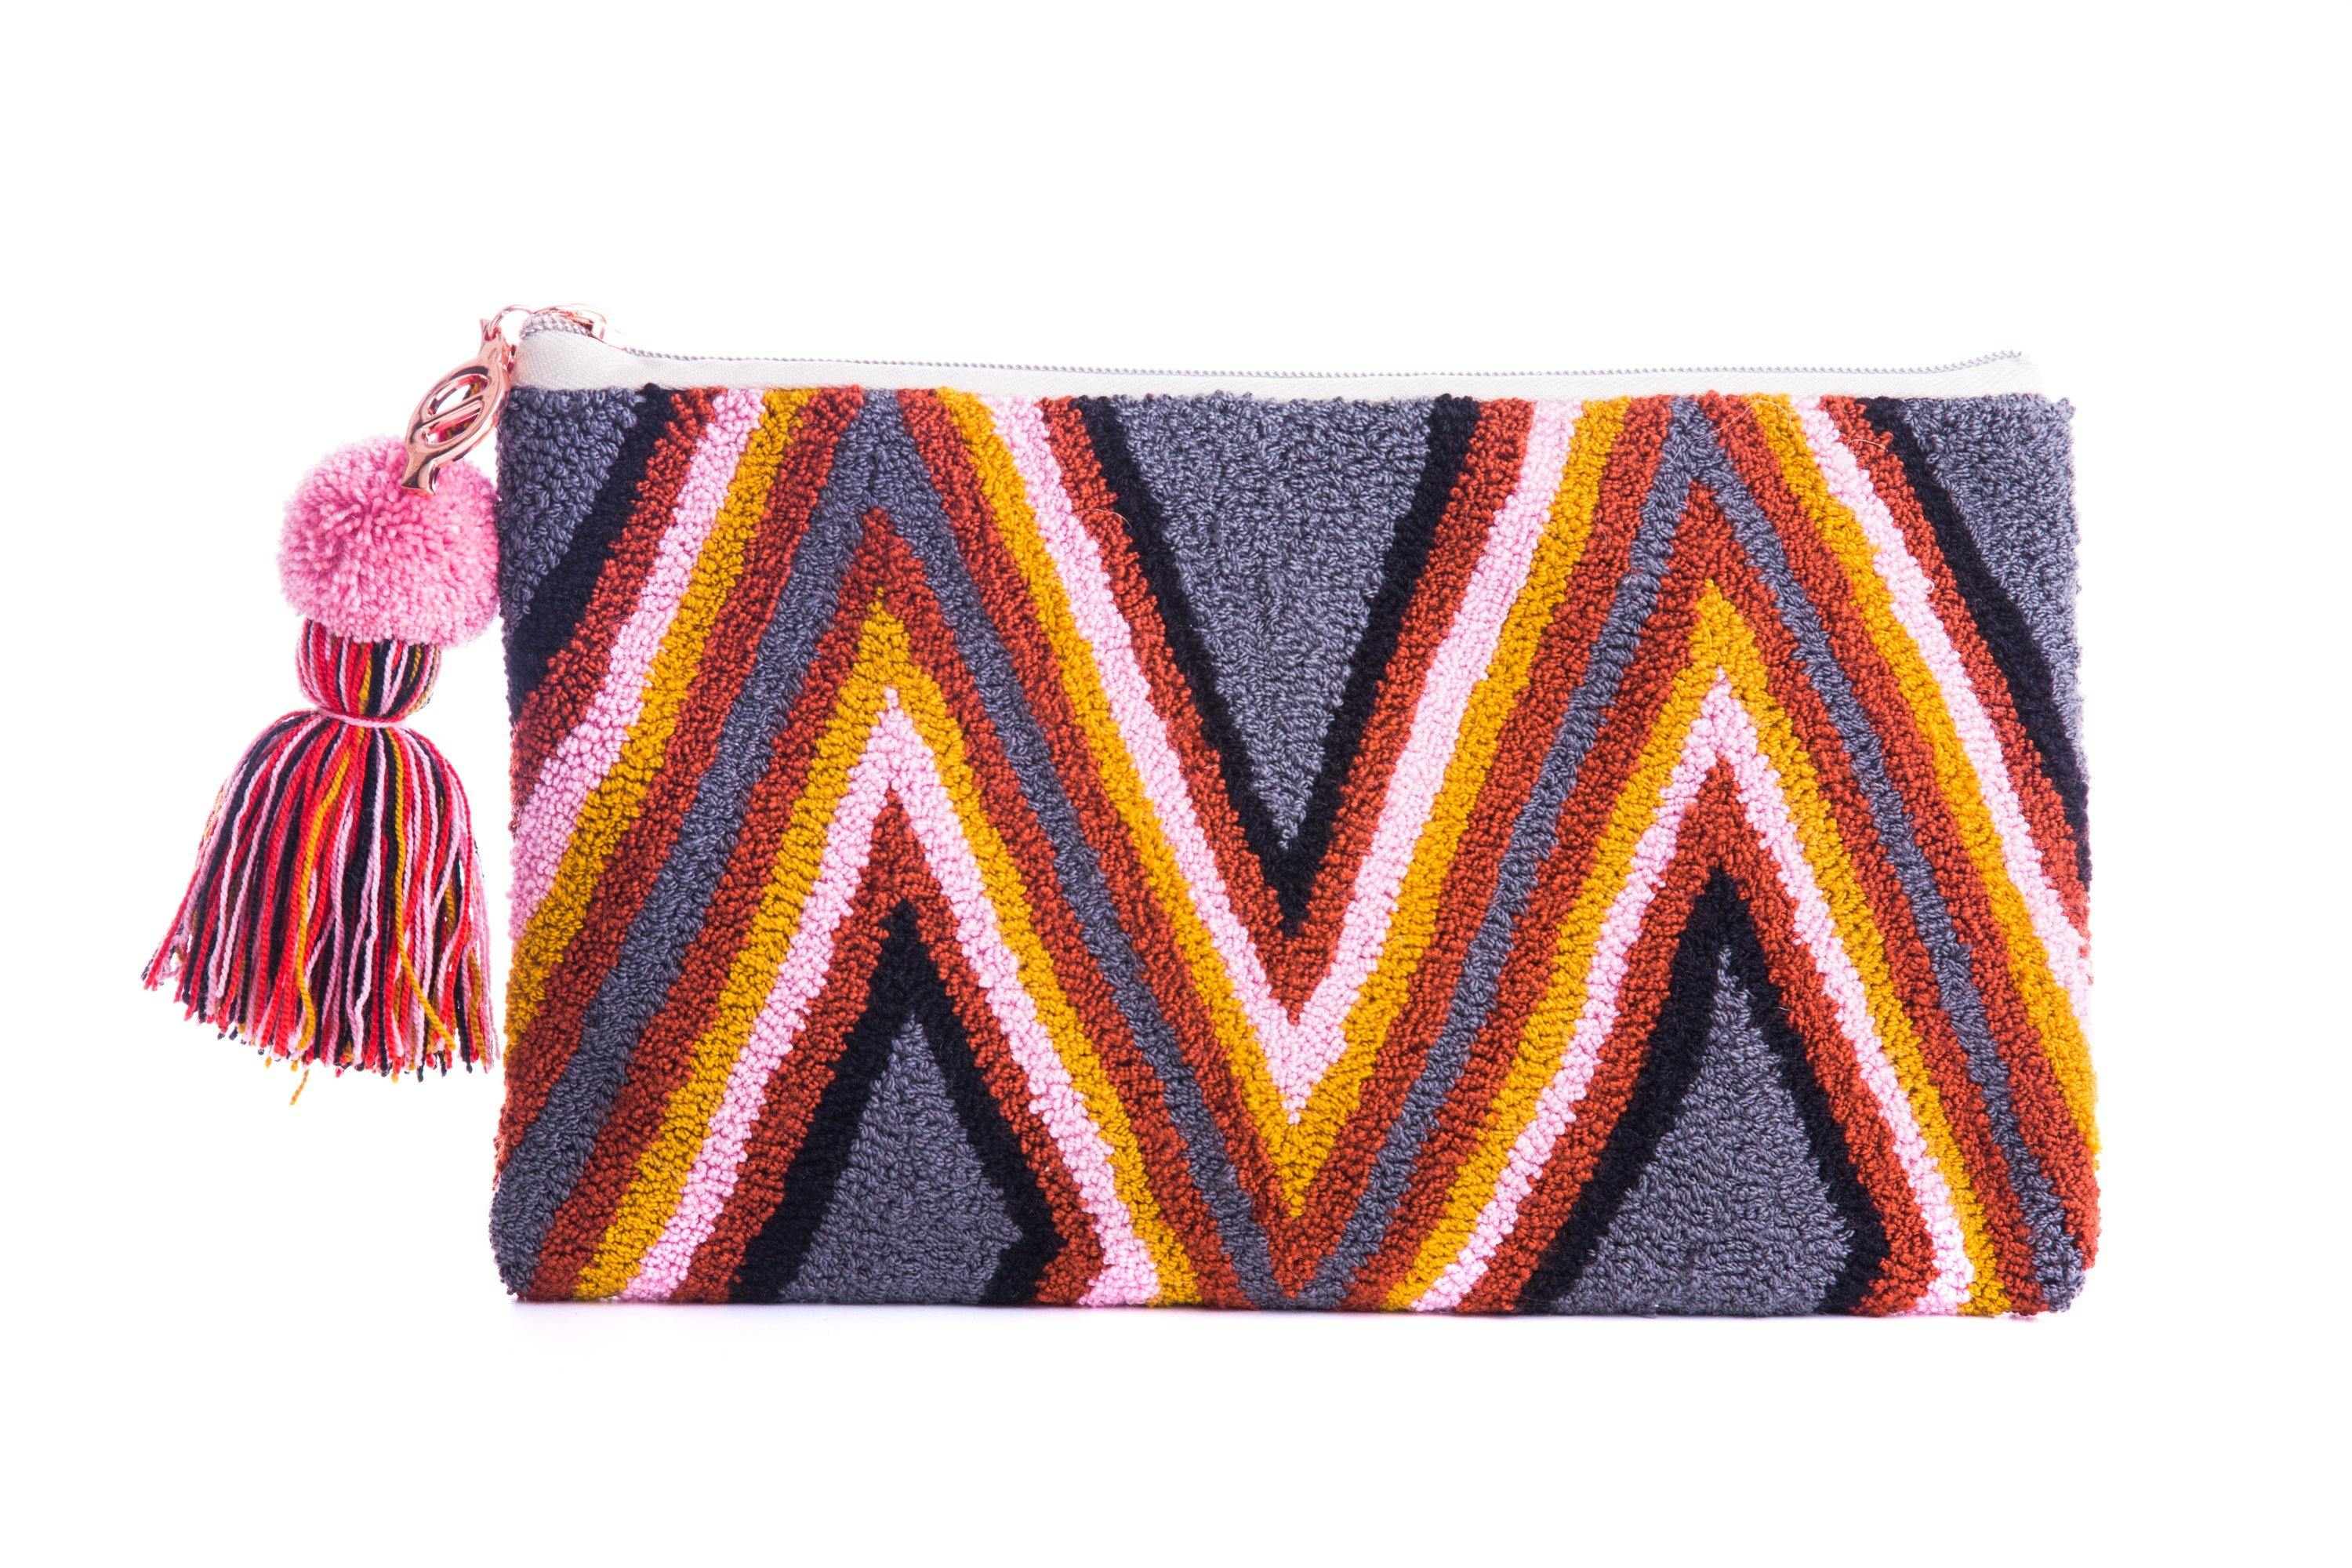 MIGTZA W - HANDWOVEN WAYUU BAG - NATURAL ROUGH